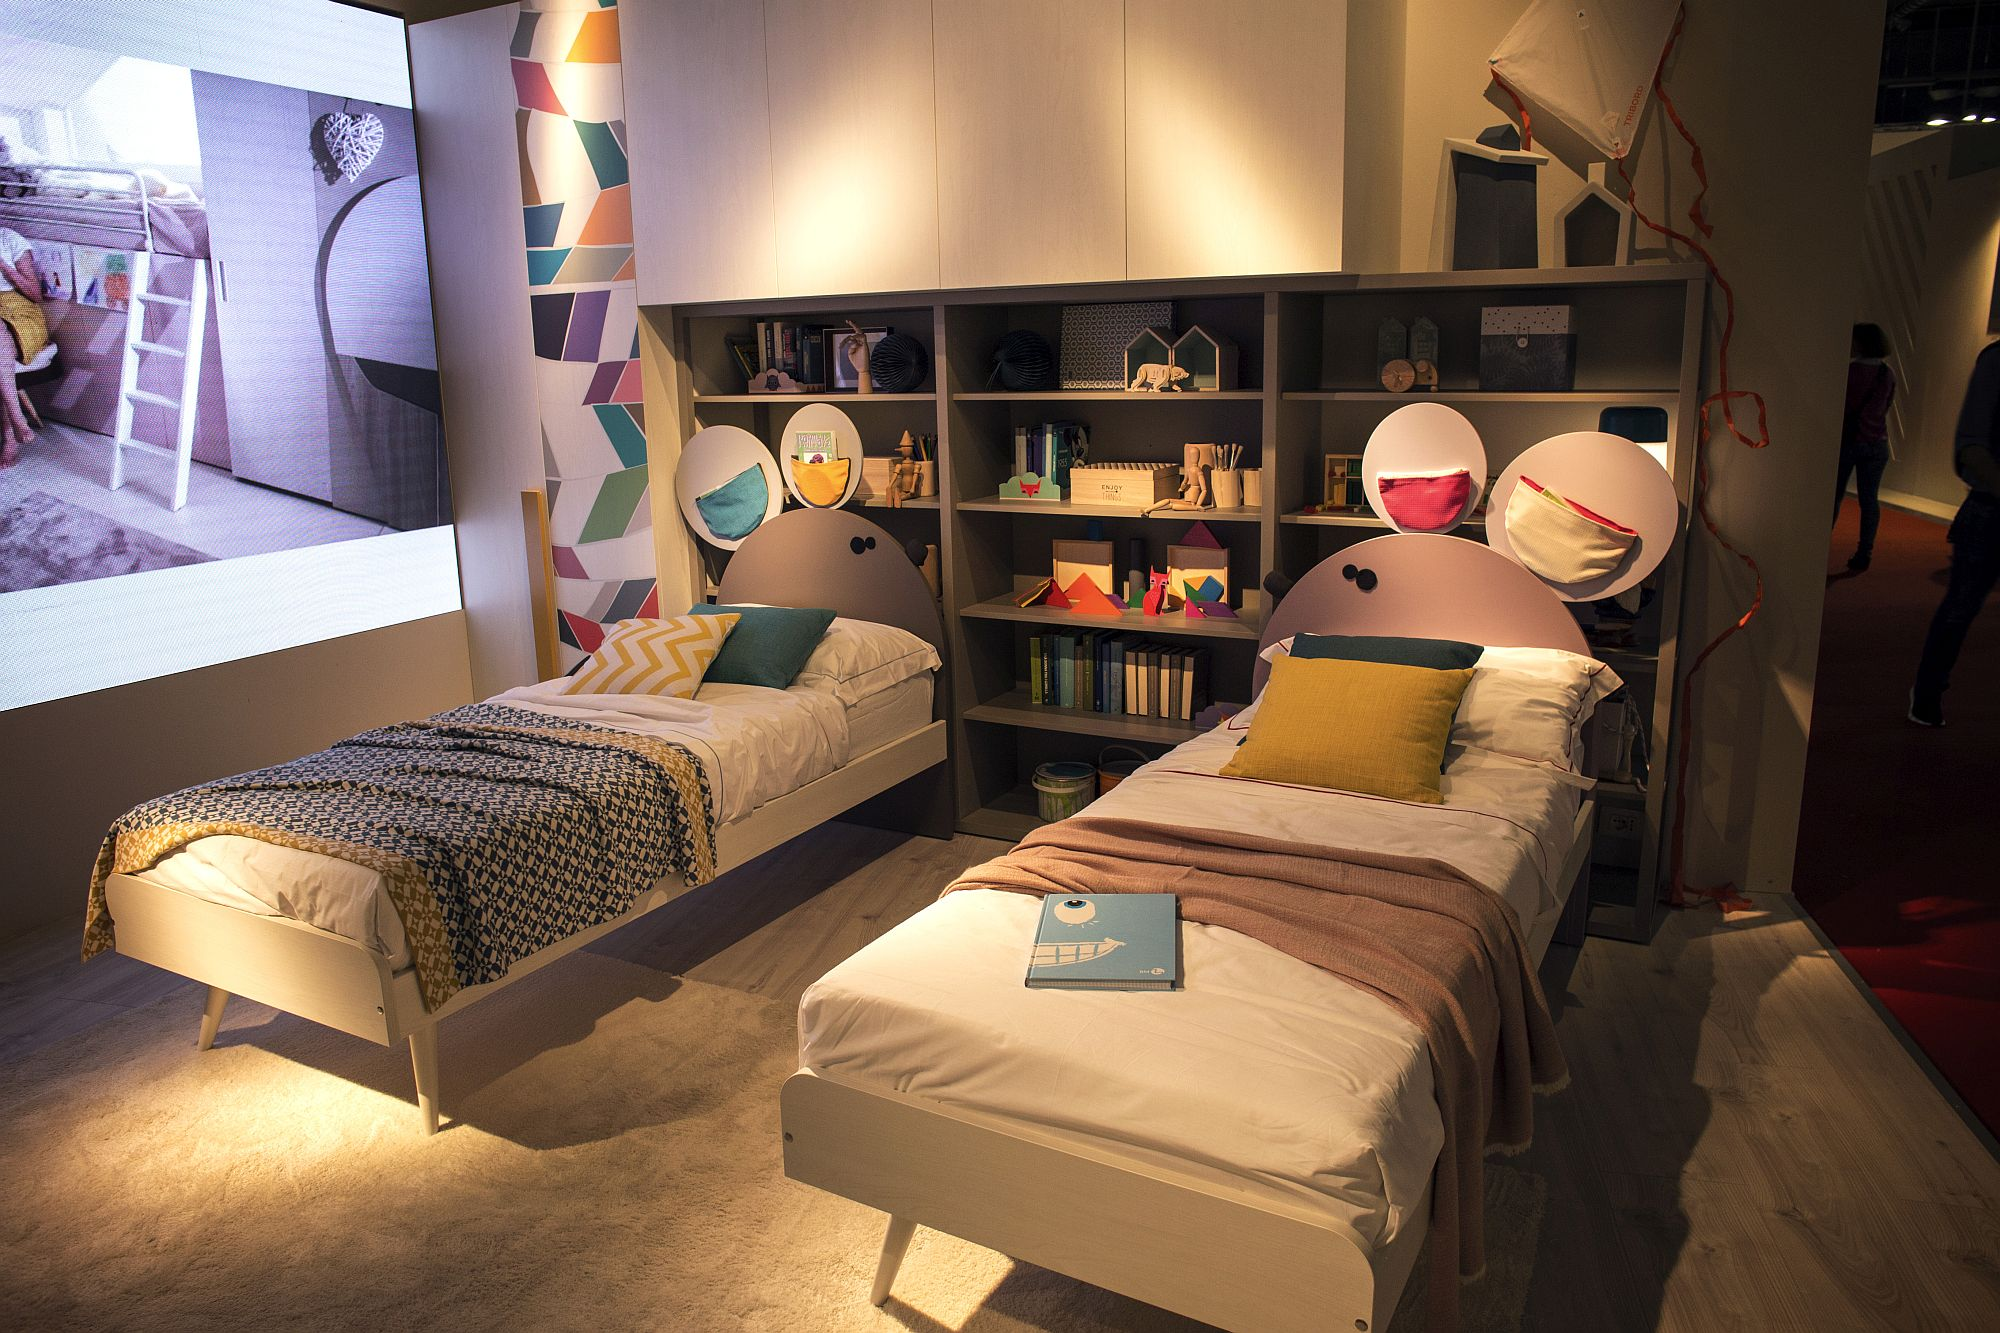 Modest kids' bedroom with twin beds and ample shelf space